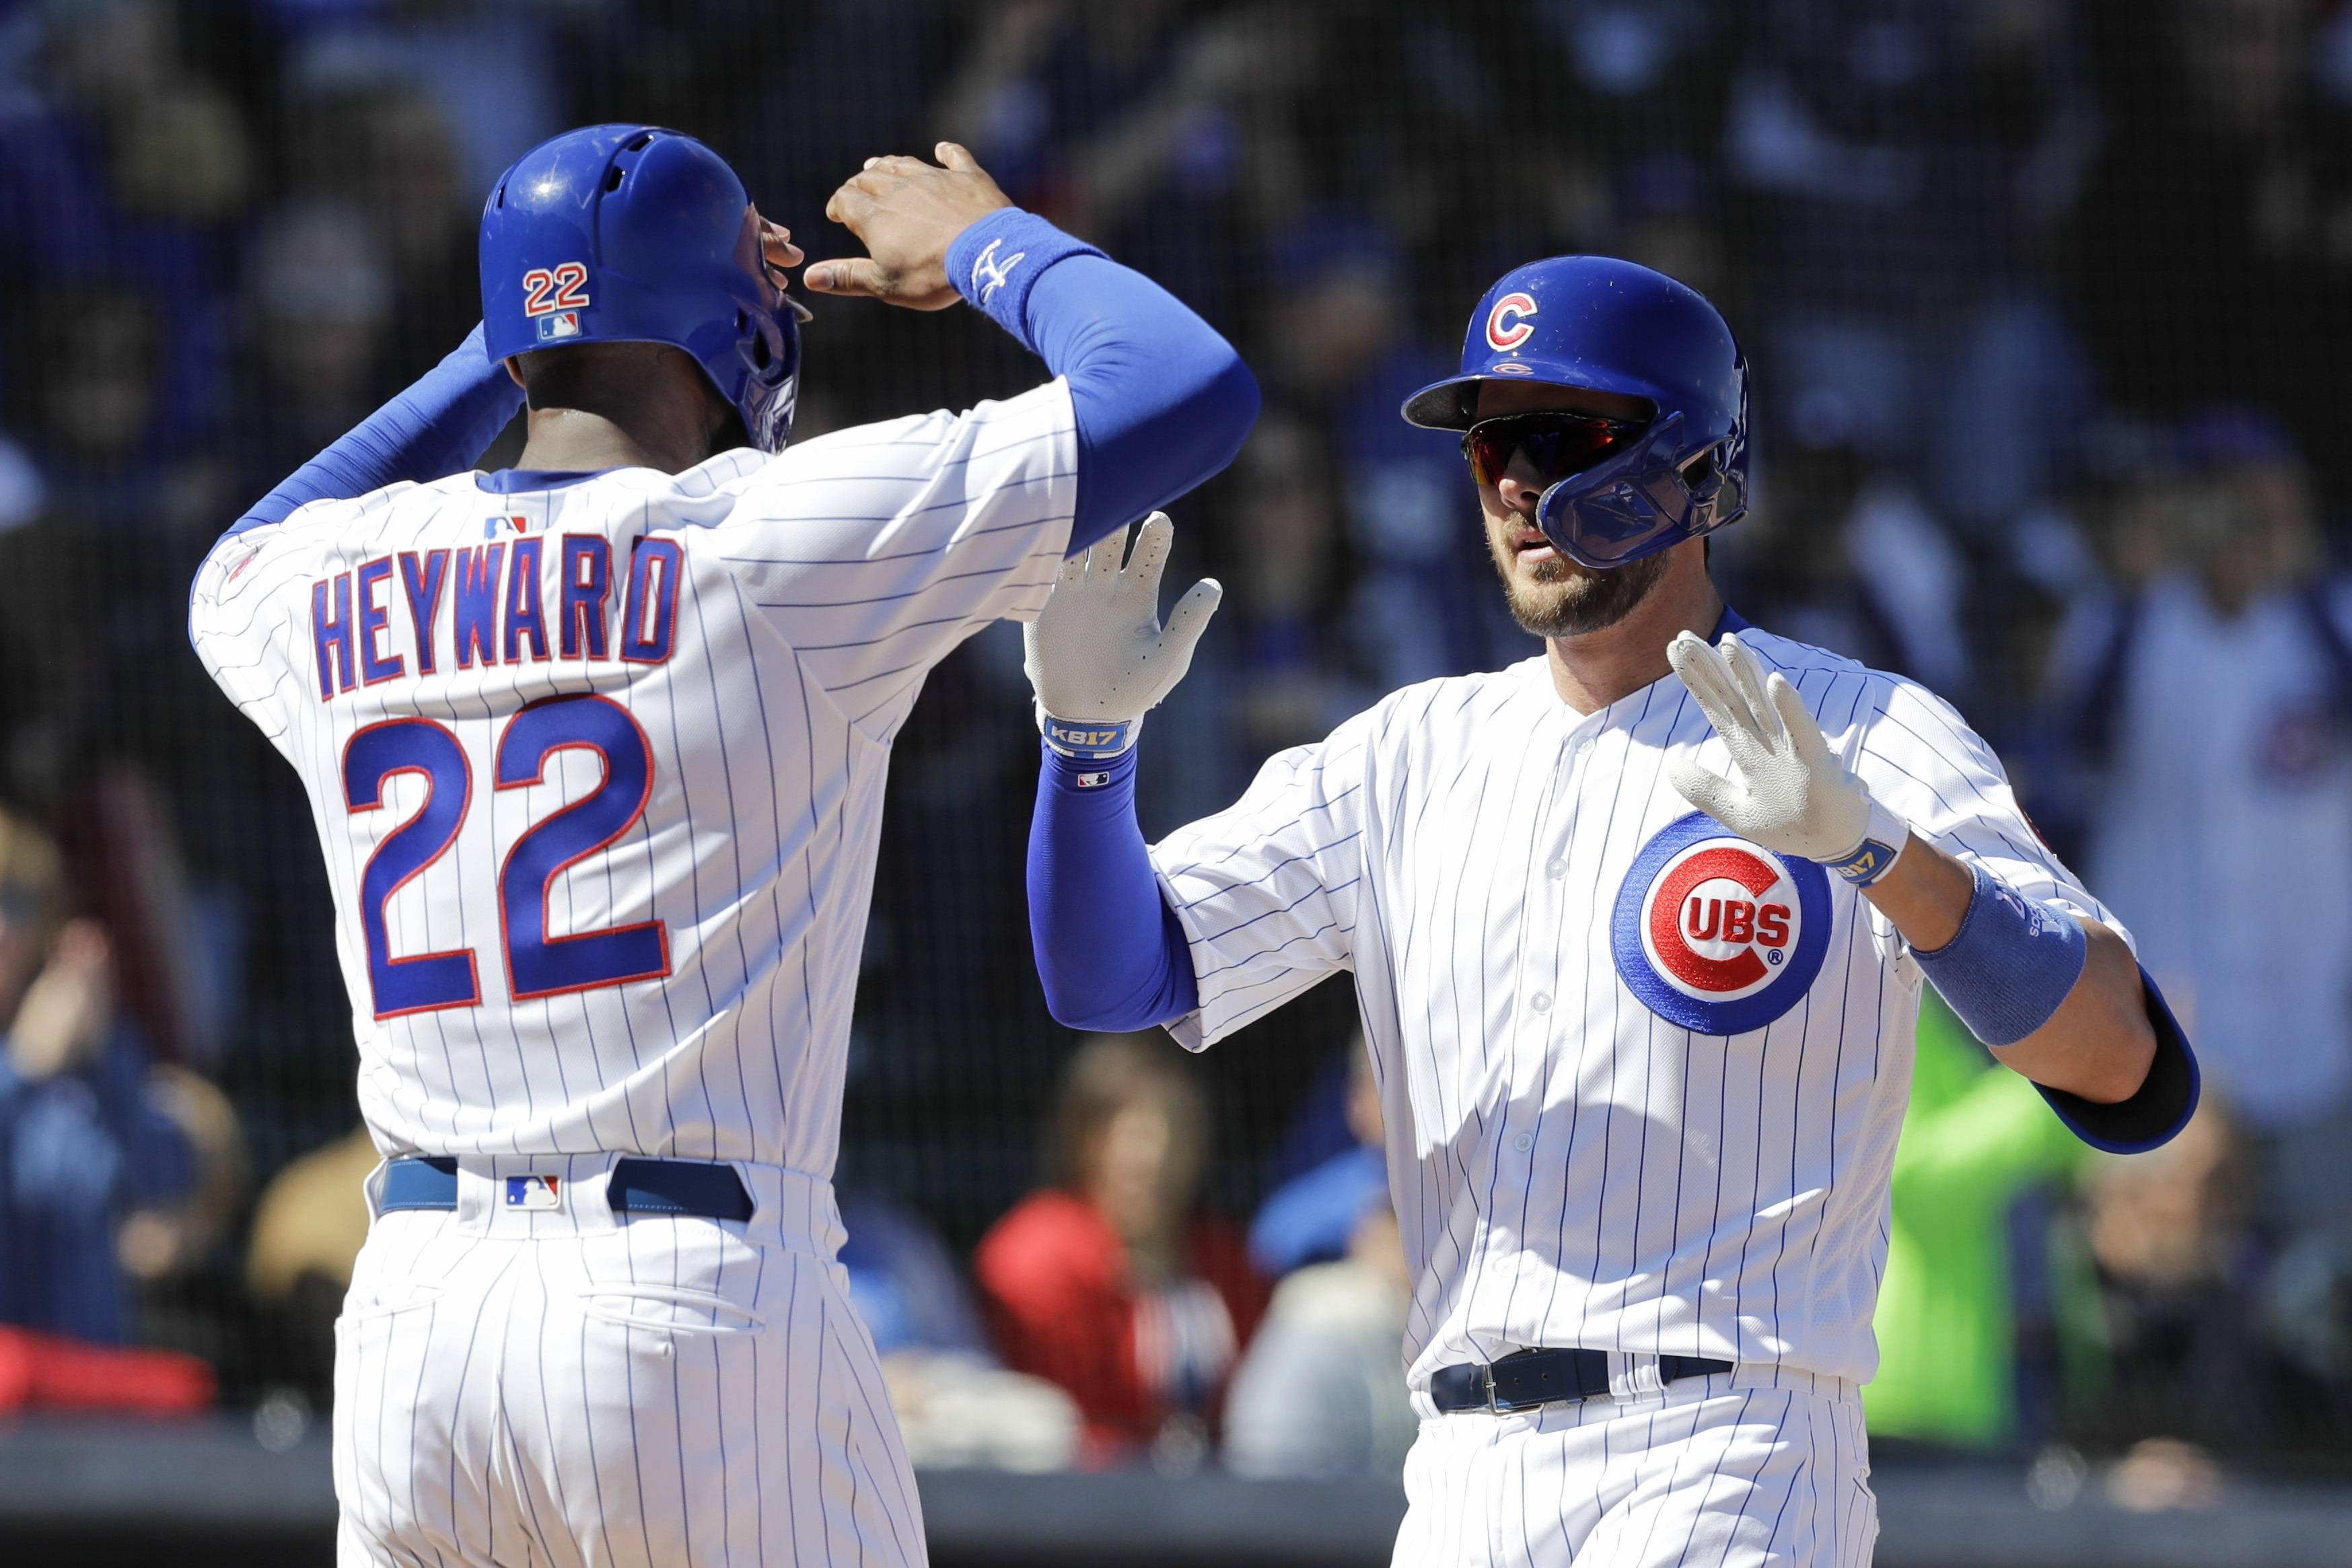 Chicago Cubs' Kris Bryant, right, celebrates with Jason Heyward after hitting a two-run home run during the first inning of a spring training baseball game against the Milwaukee Brewers, Saturday, Feb. 23, 2019, in Mesa, Ariz.